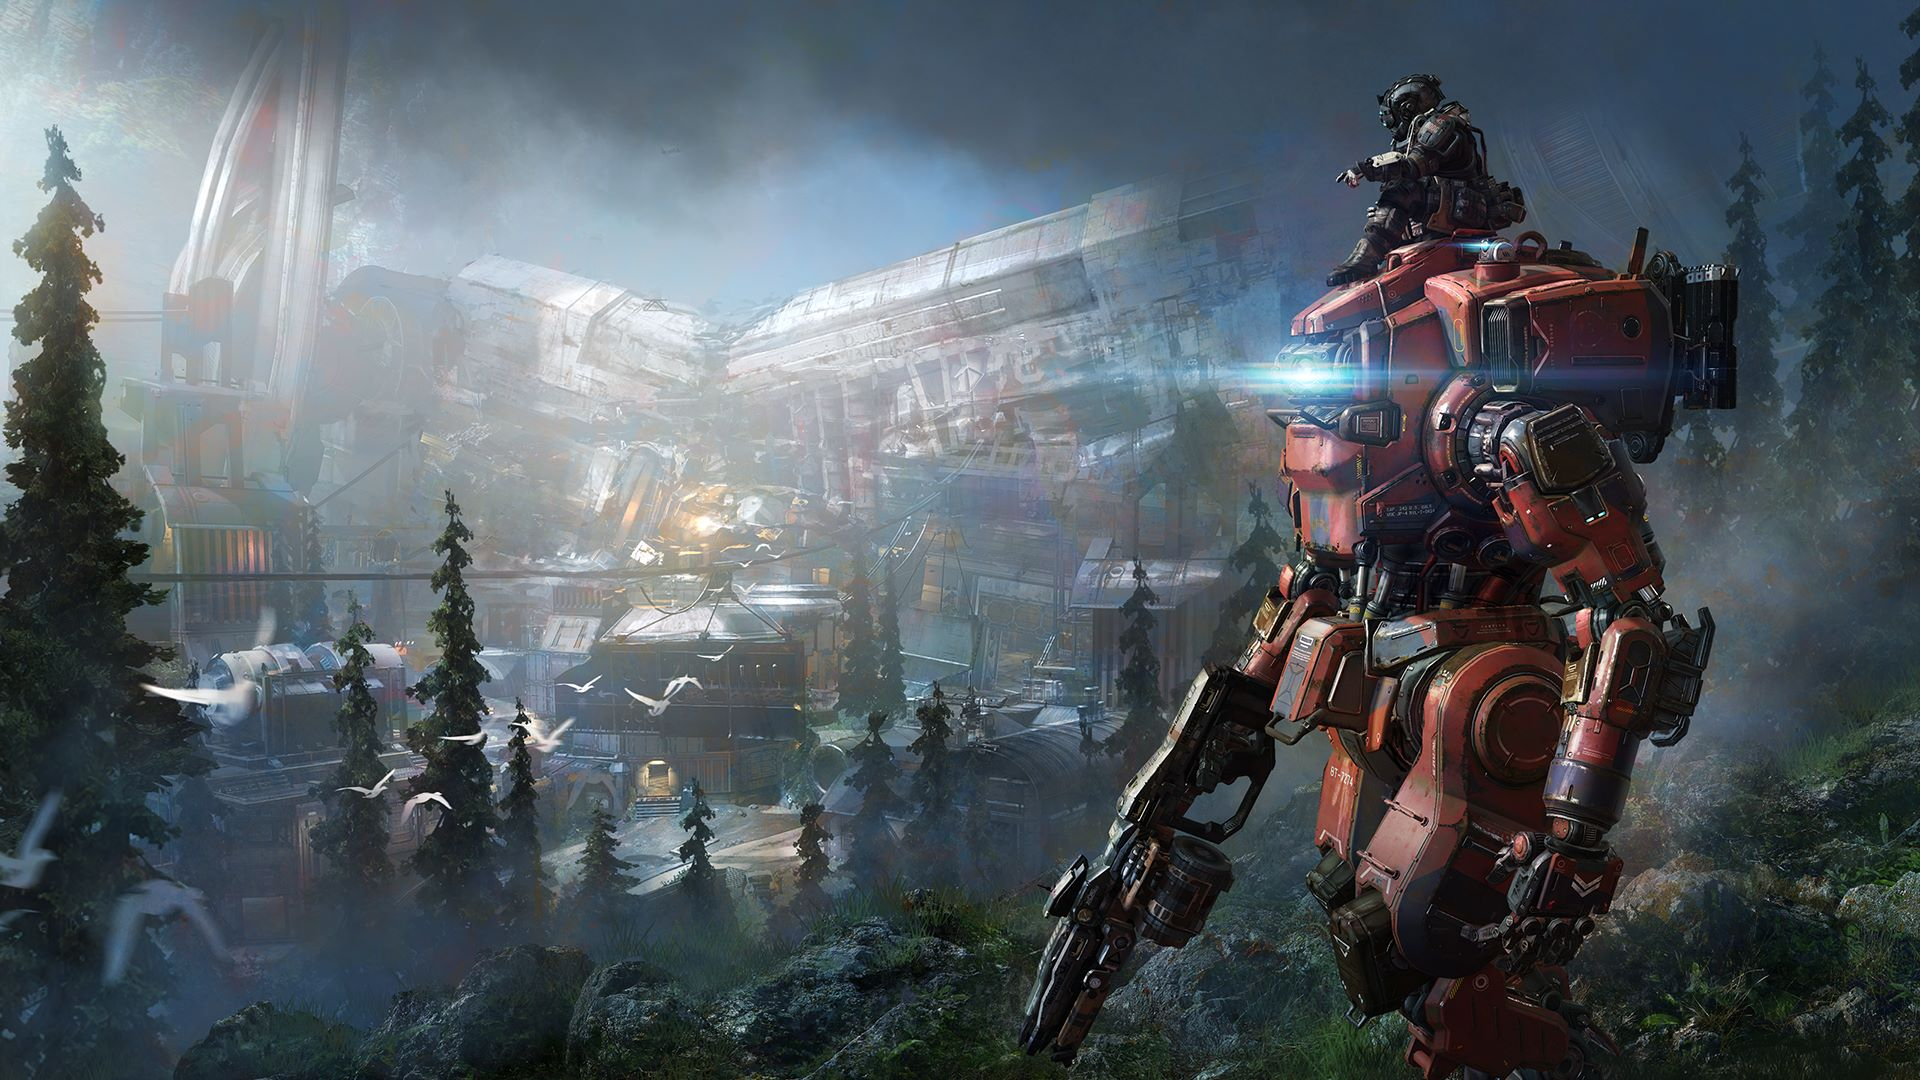 New Titanfall game scheduled for 2019 + another Star Wars title